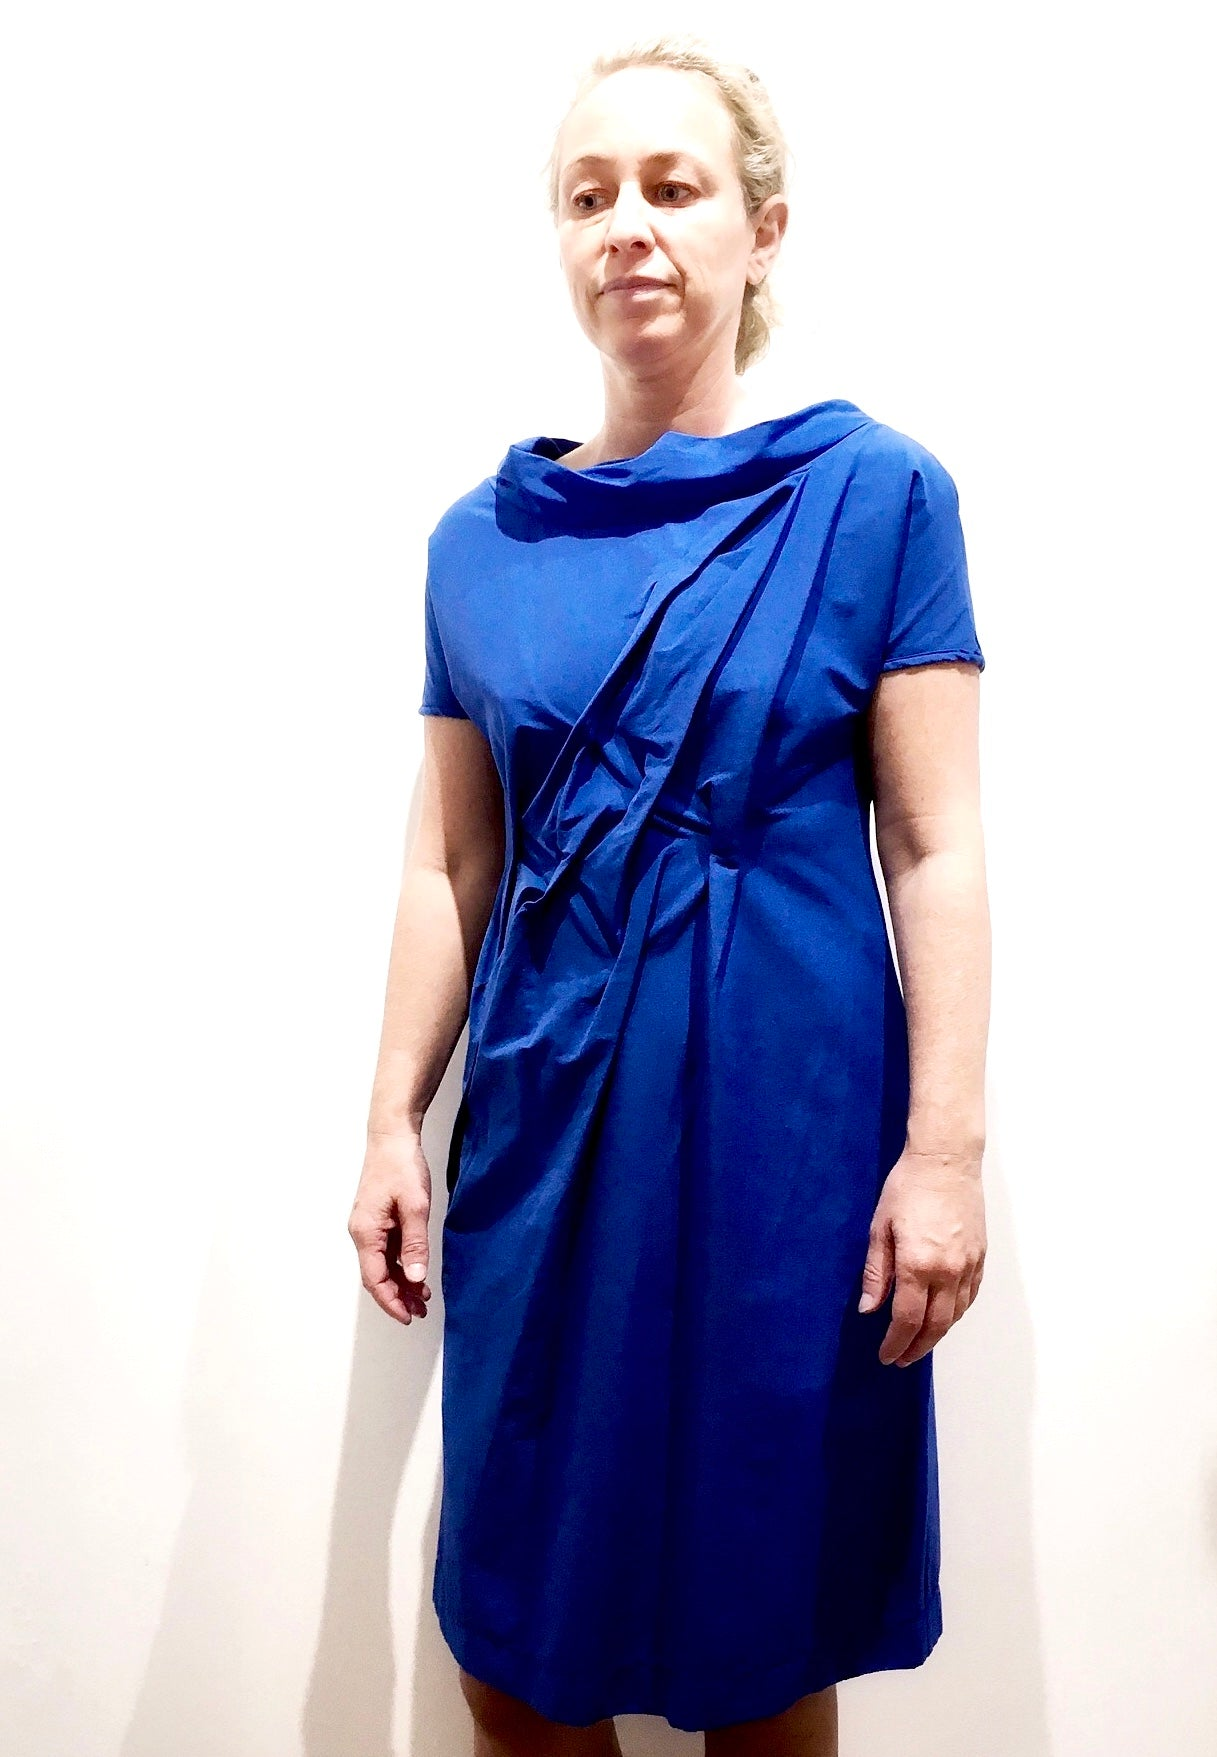 Veronique Miljkovitch Davina Dress - Royal Blue